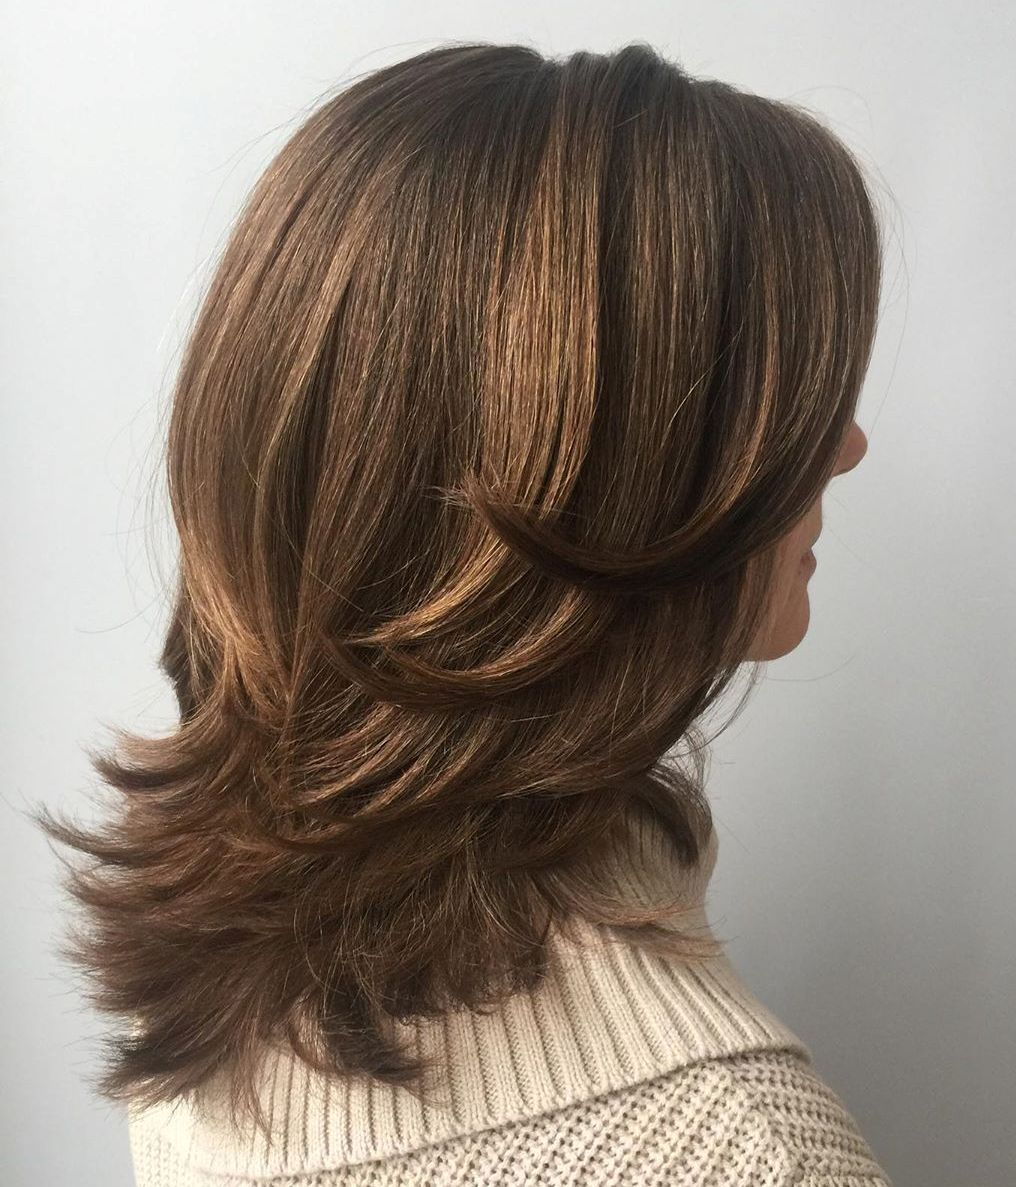 Mid-Length Hair with Flipped-Up Feathered Layers